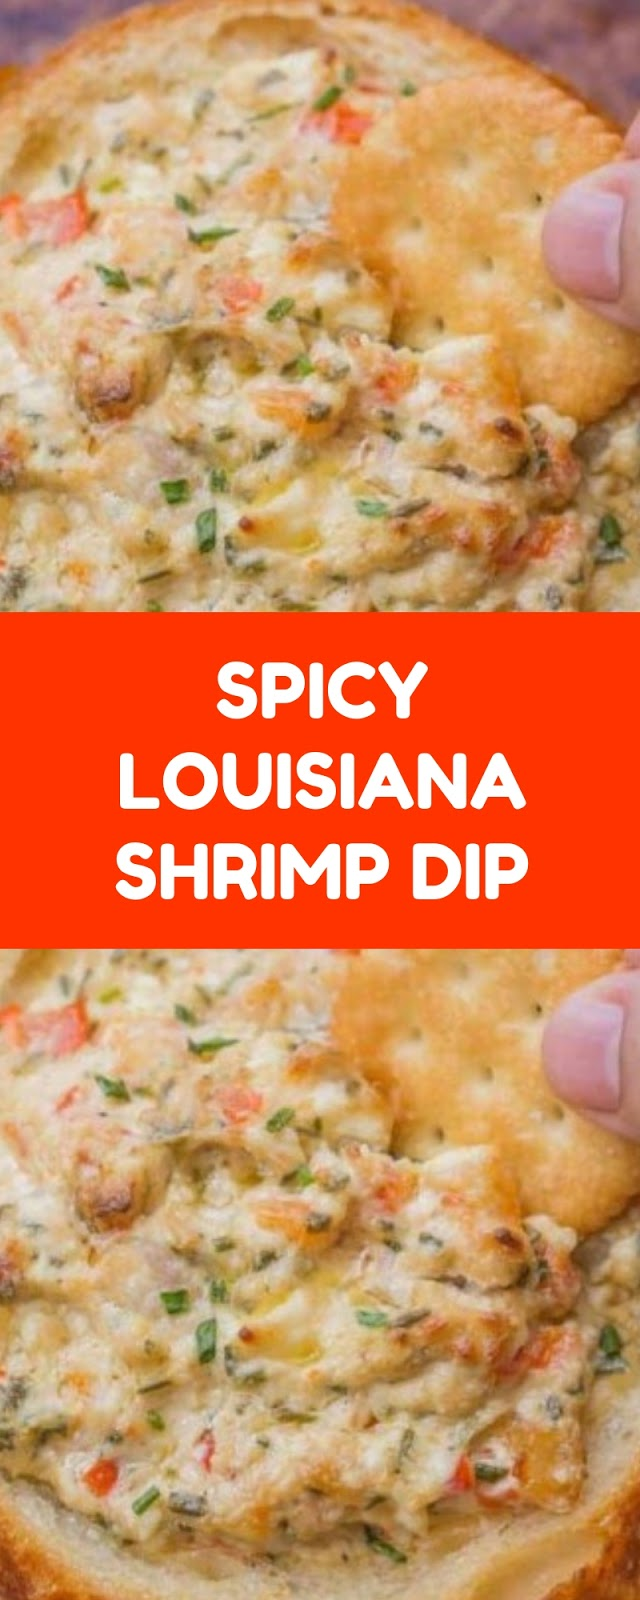 Spicy Louisiana Shrimp Dip Recipe